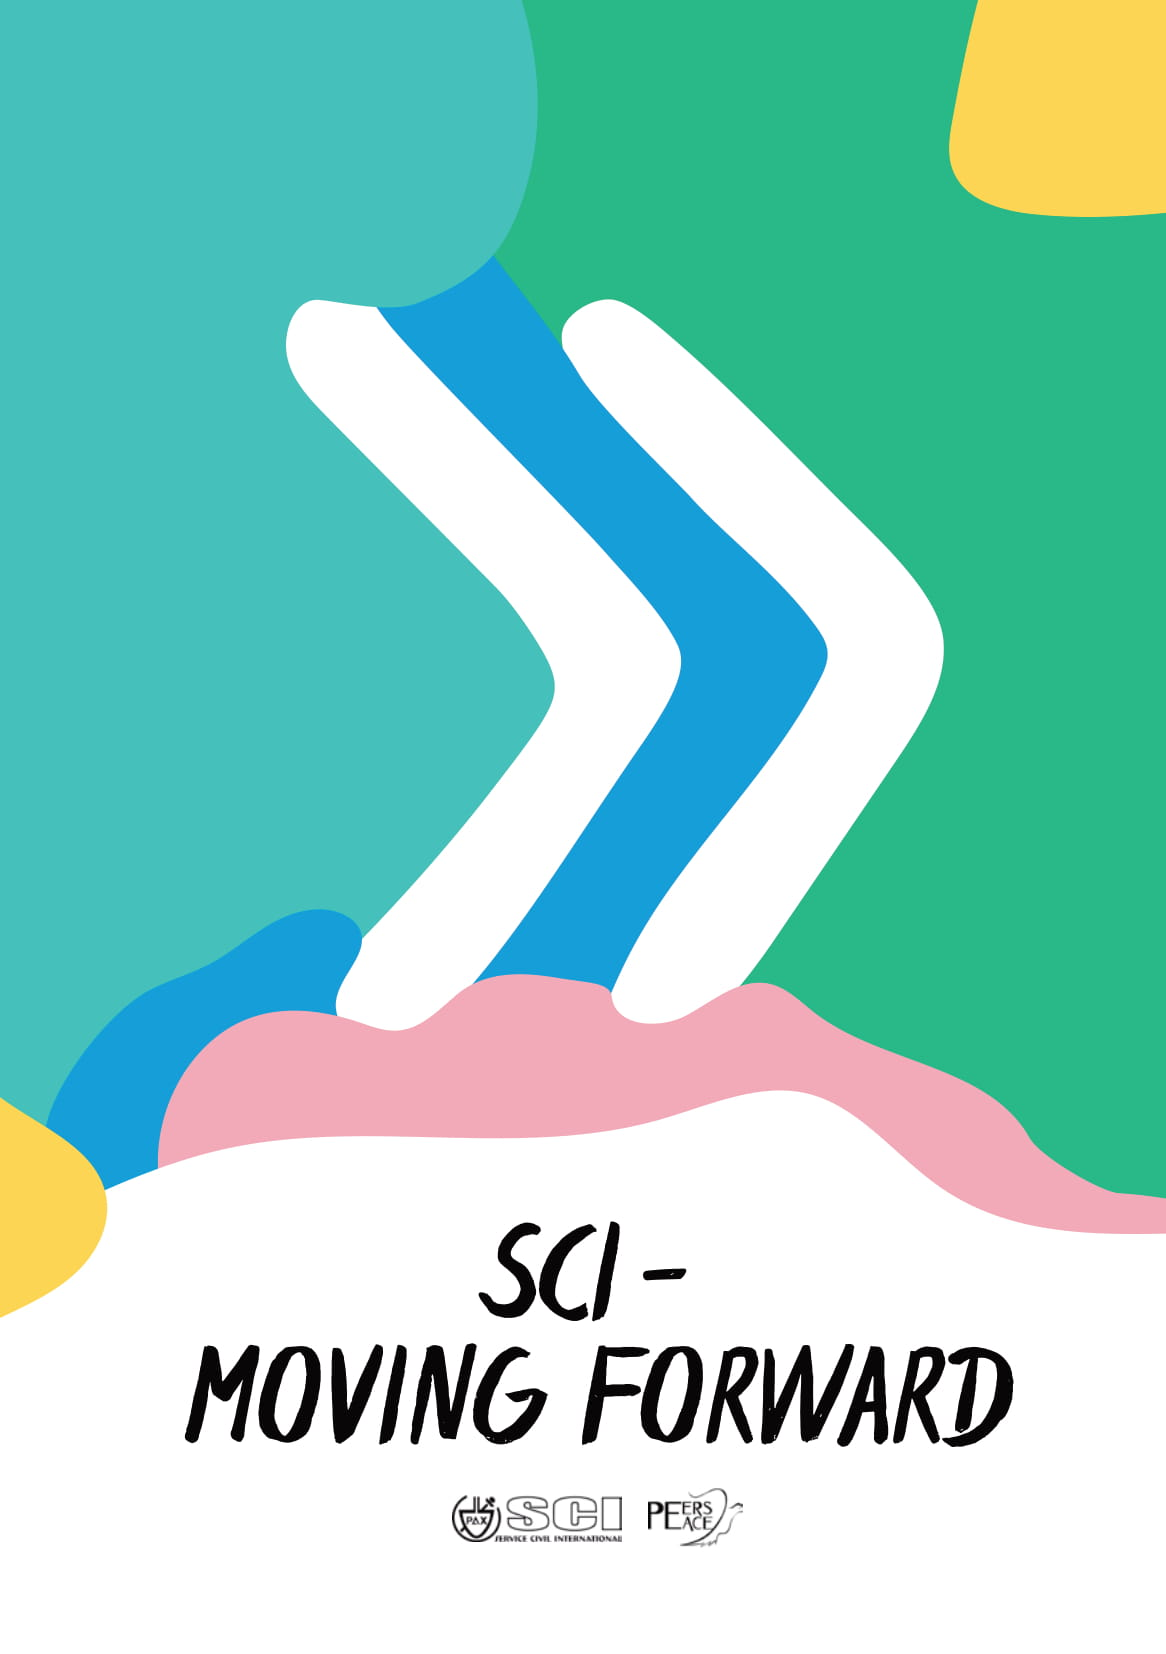 SCI – Moving Forward